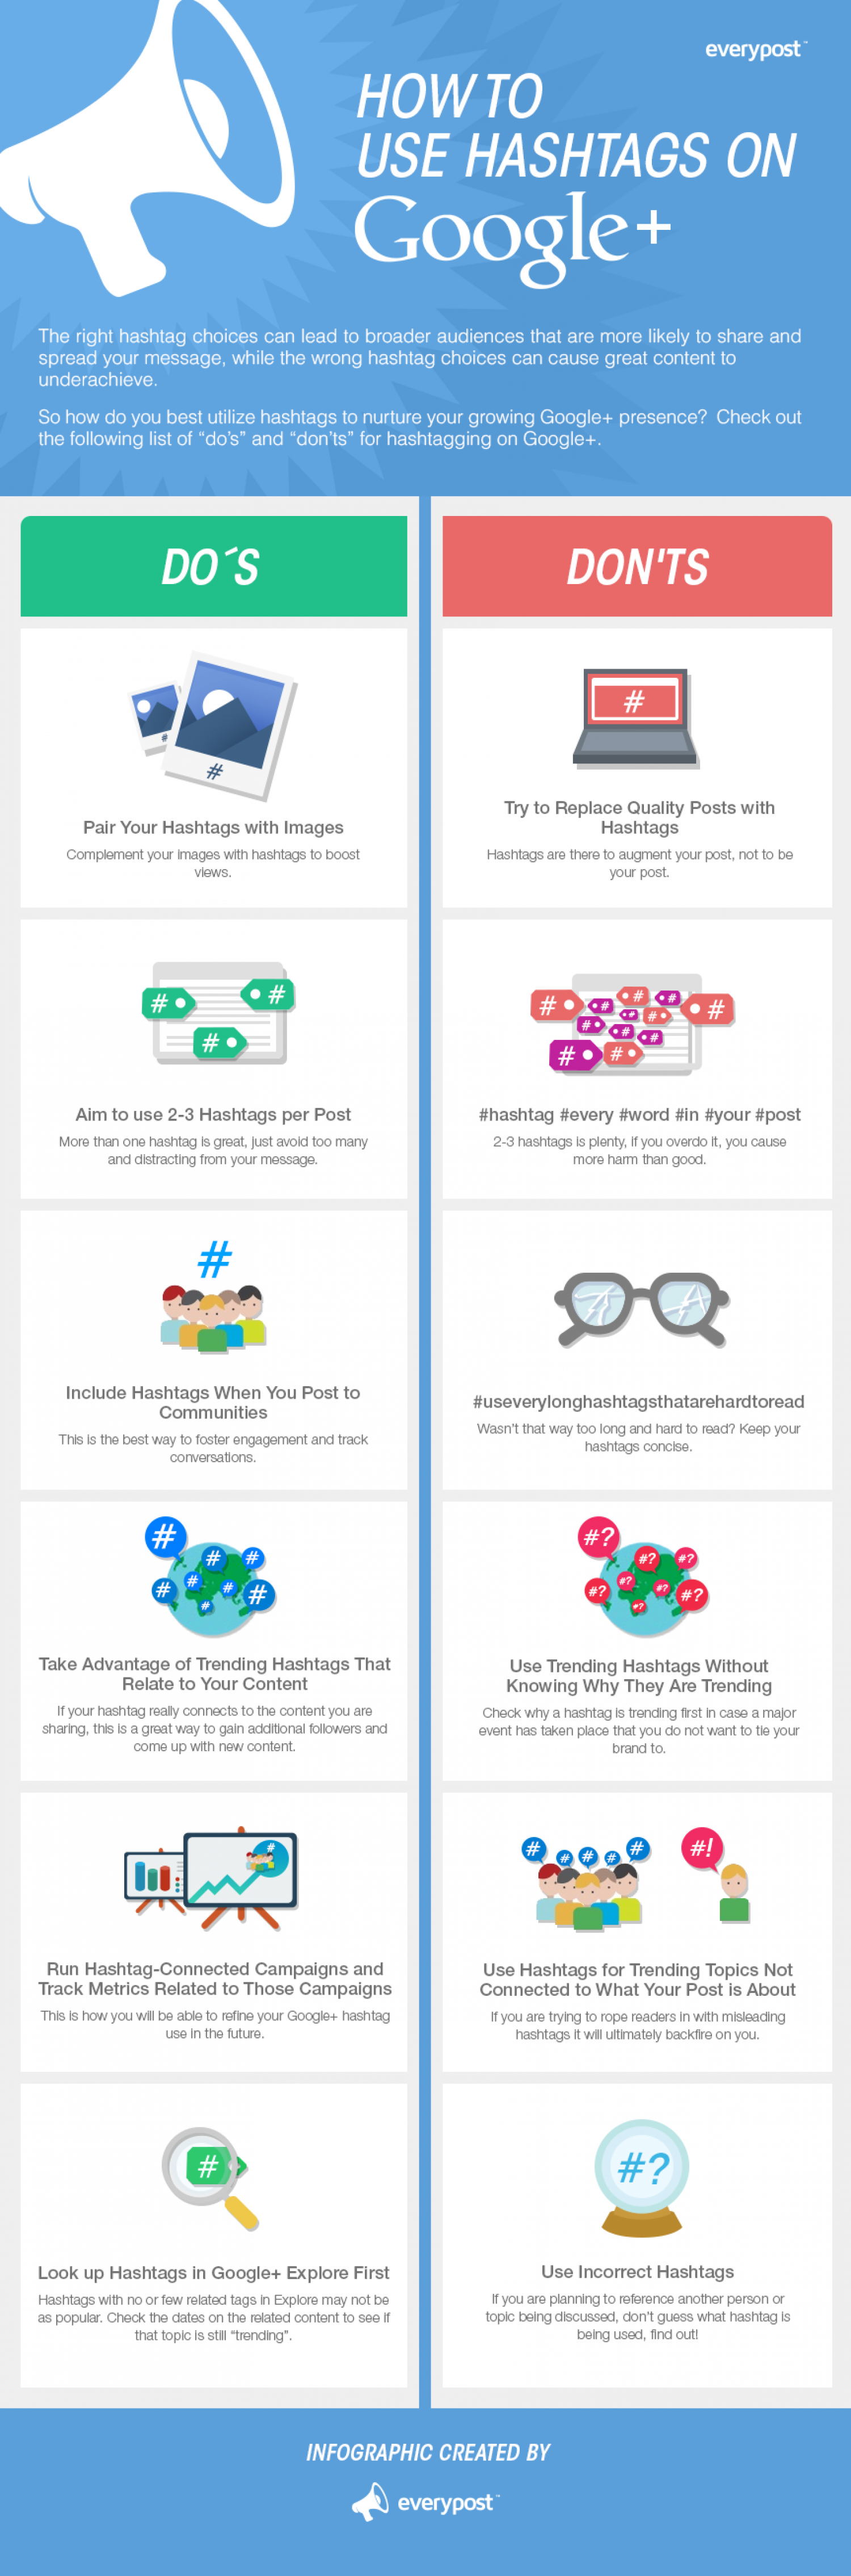 How to use Hashtags on Google+: Do's and Don'ts Infographic